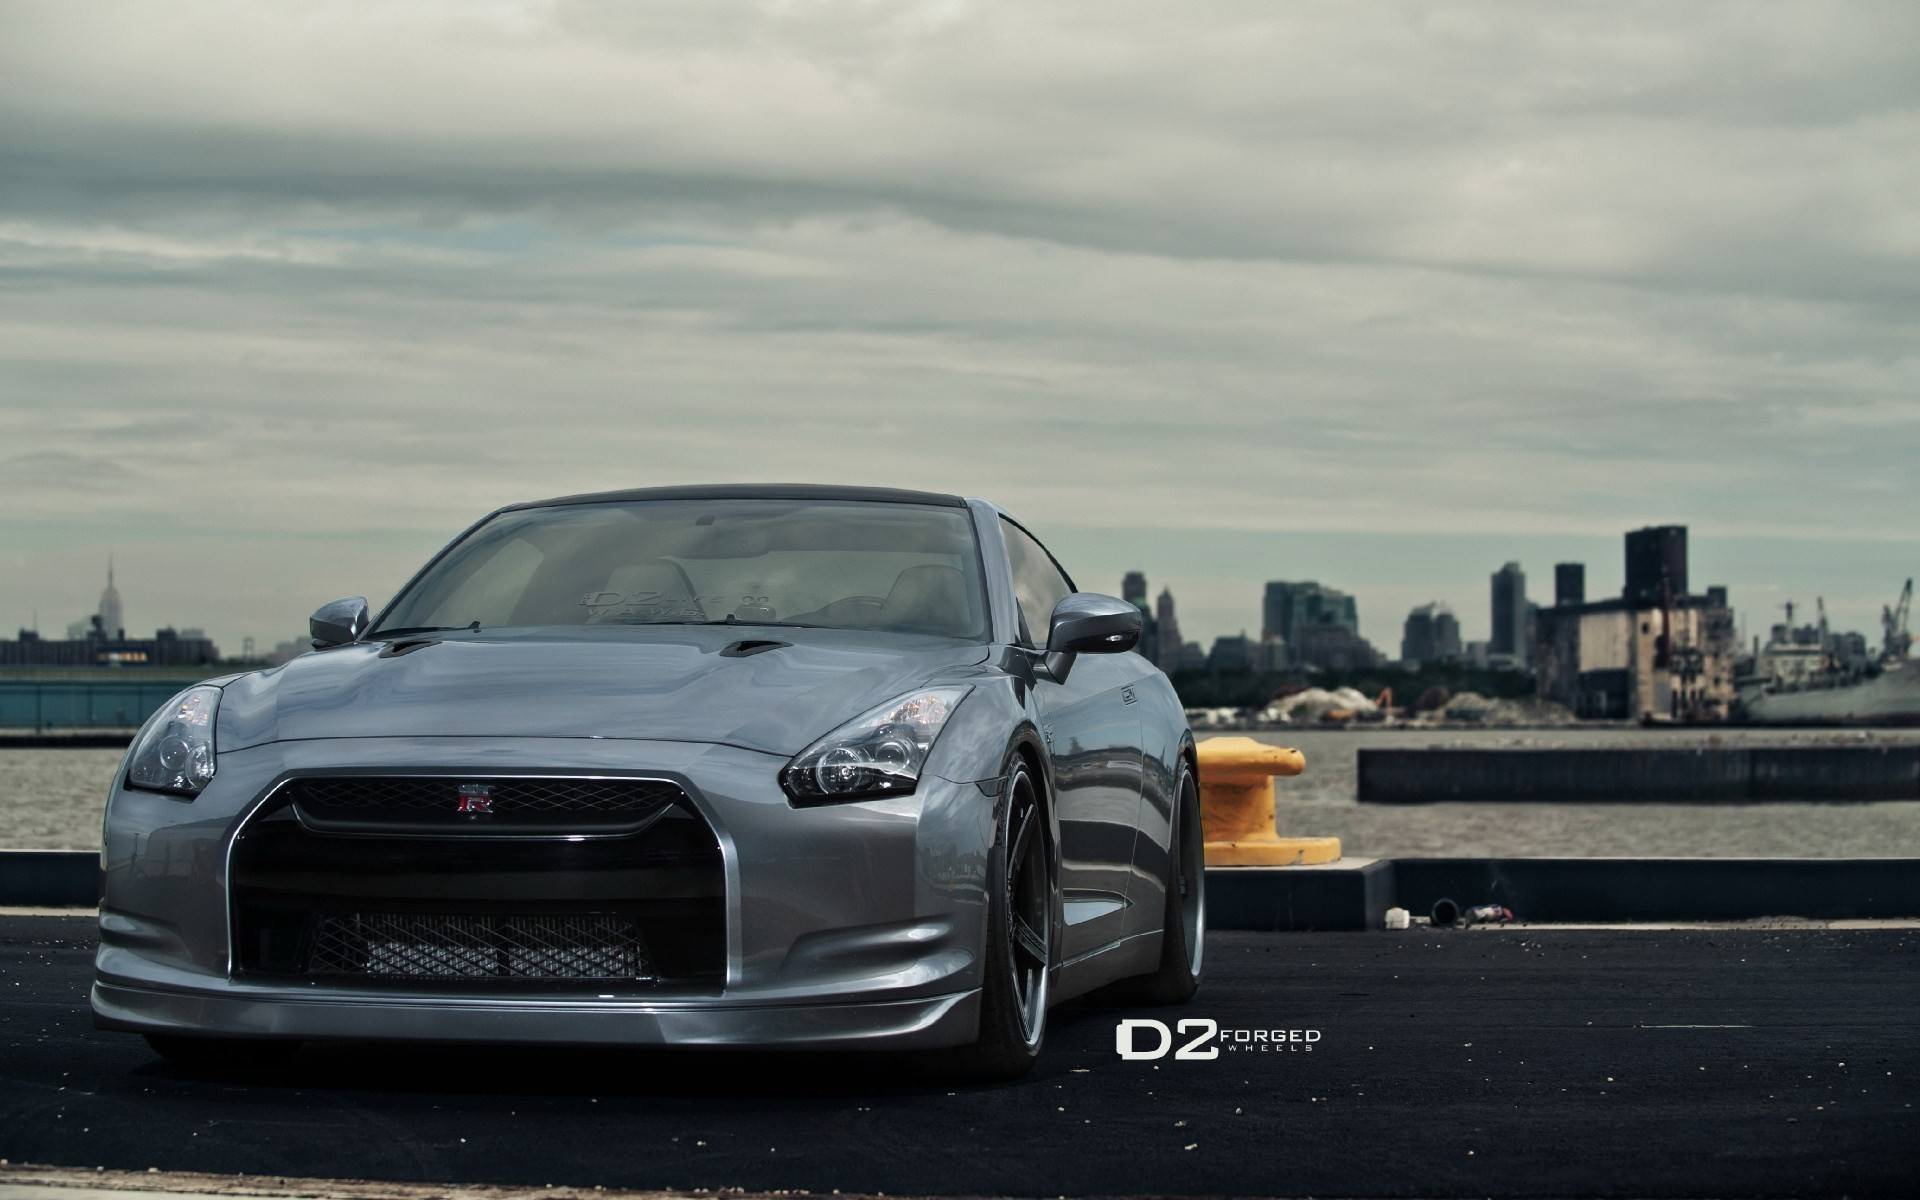 cars Nissan nissan skyline gt-r HD Wallpaper